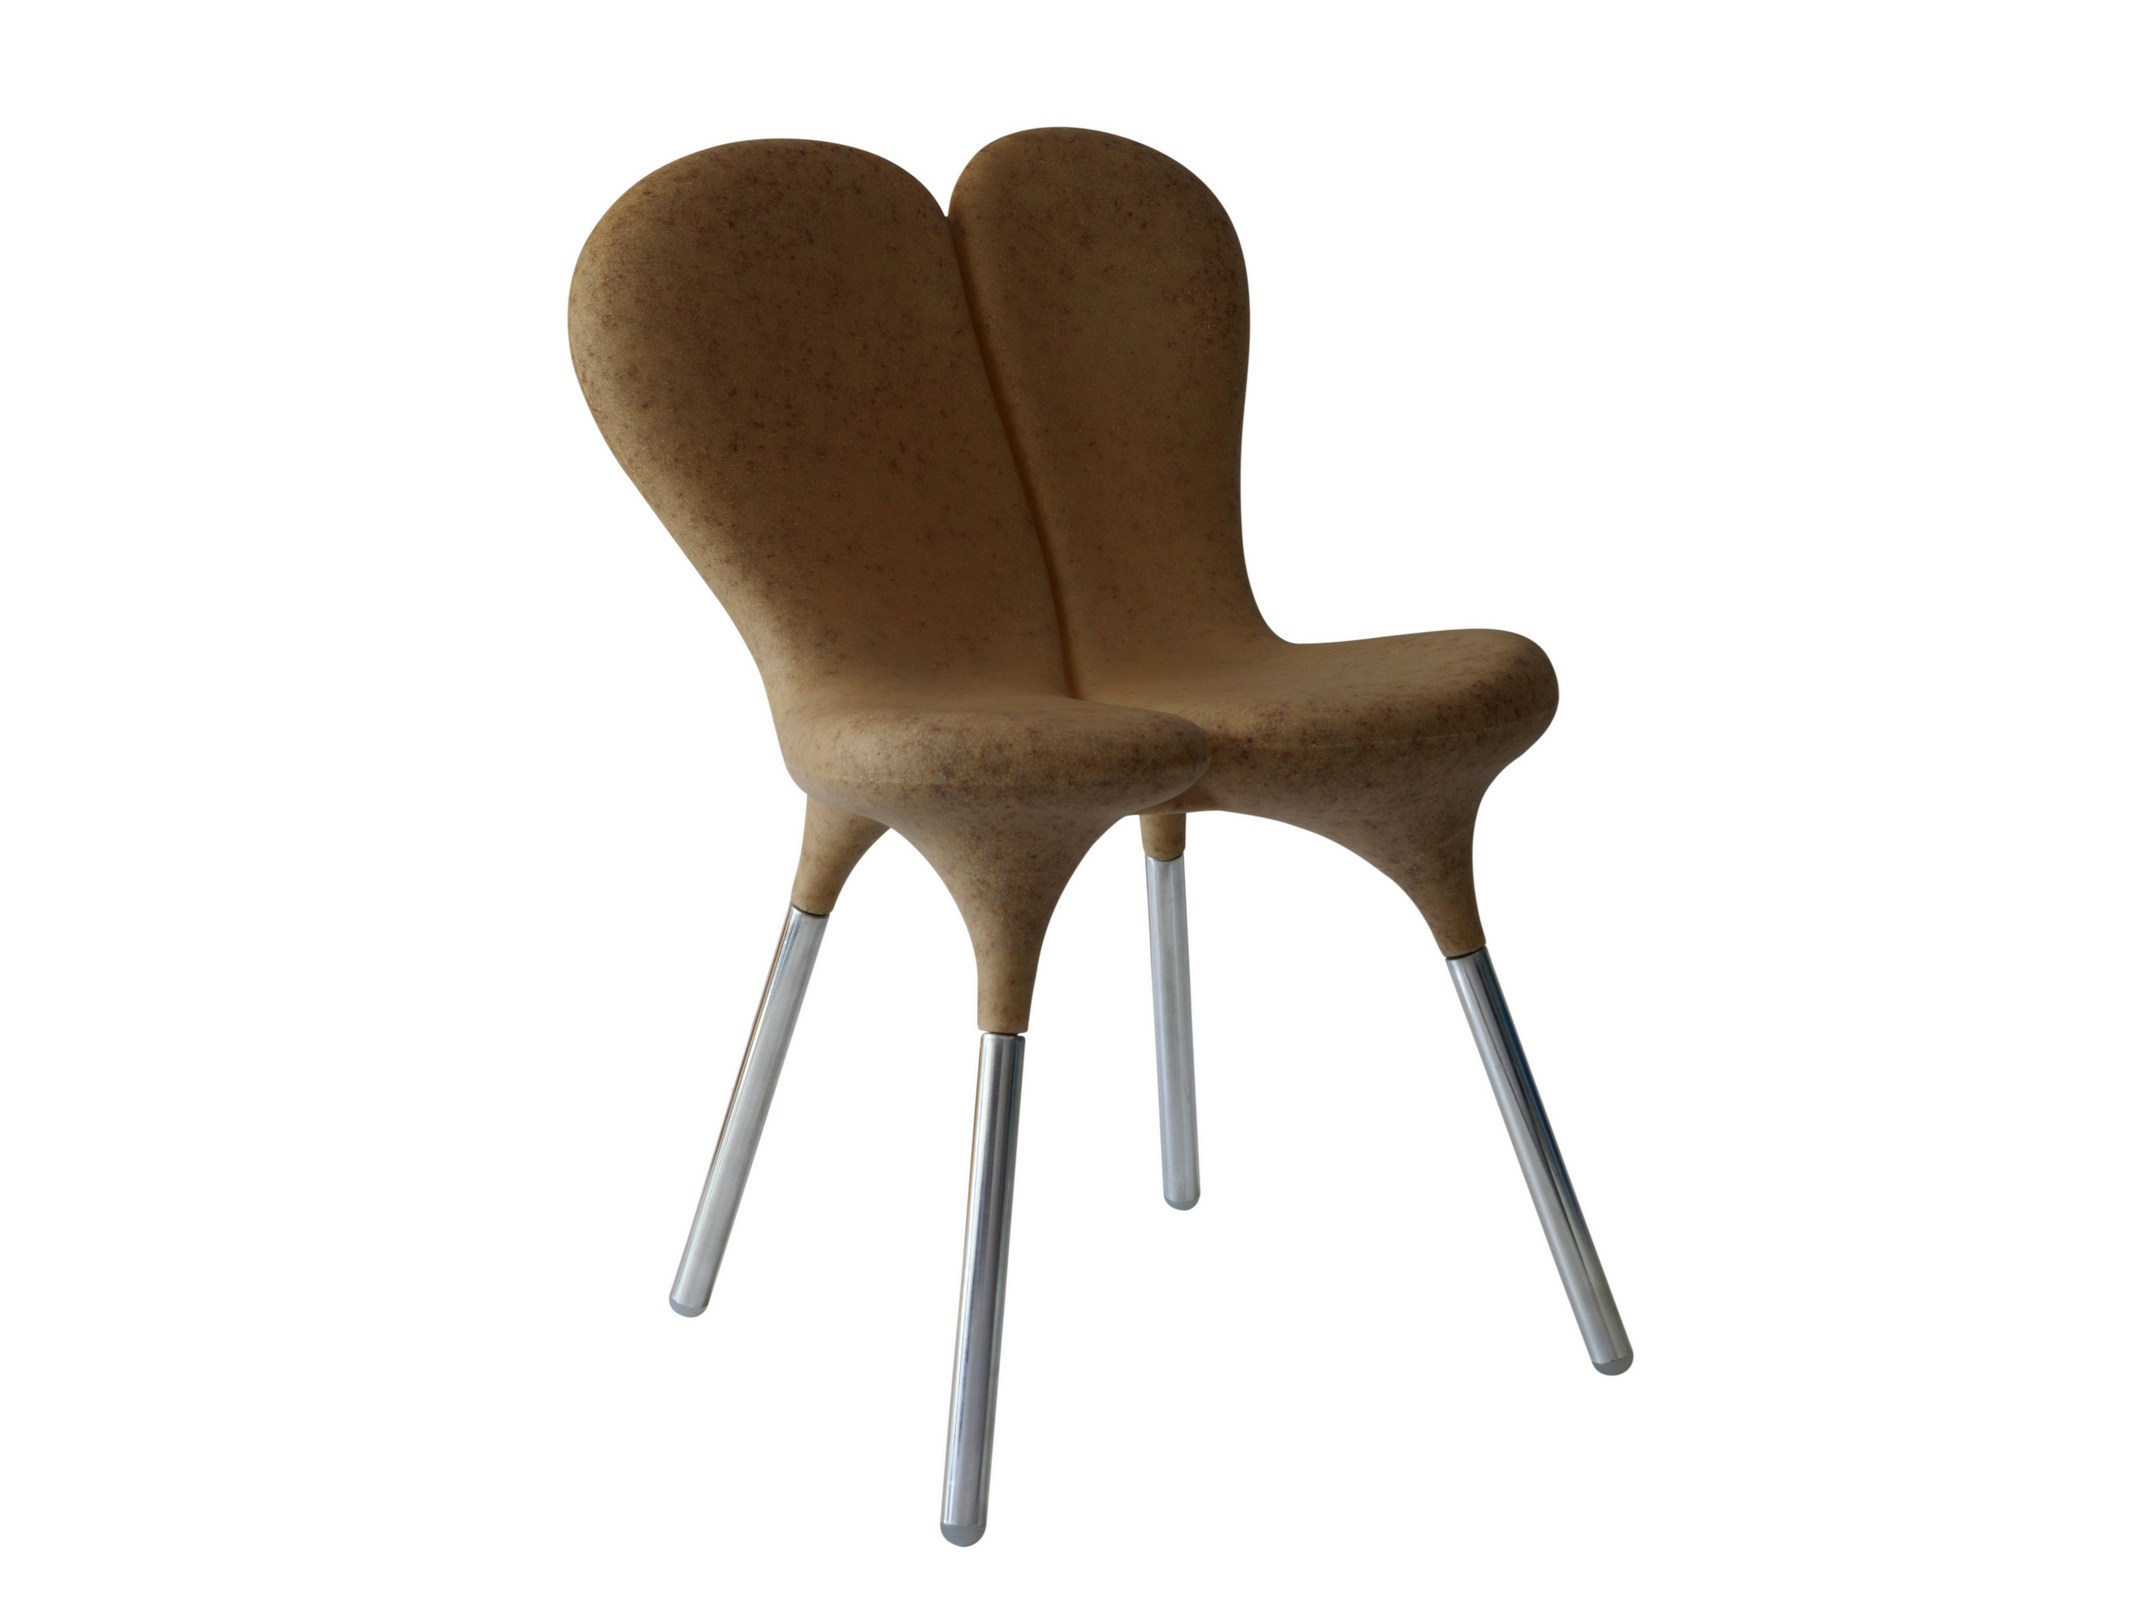 Siamese la chaise en plastique cologique design by - Chaise plastique design ...